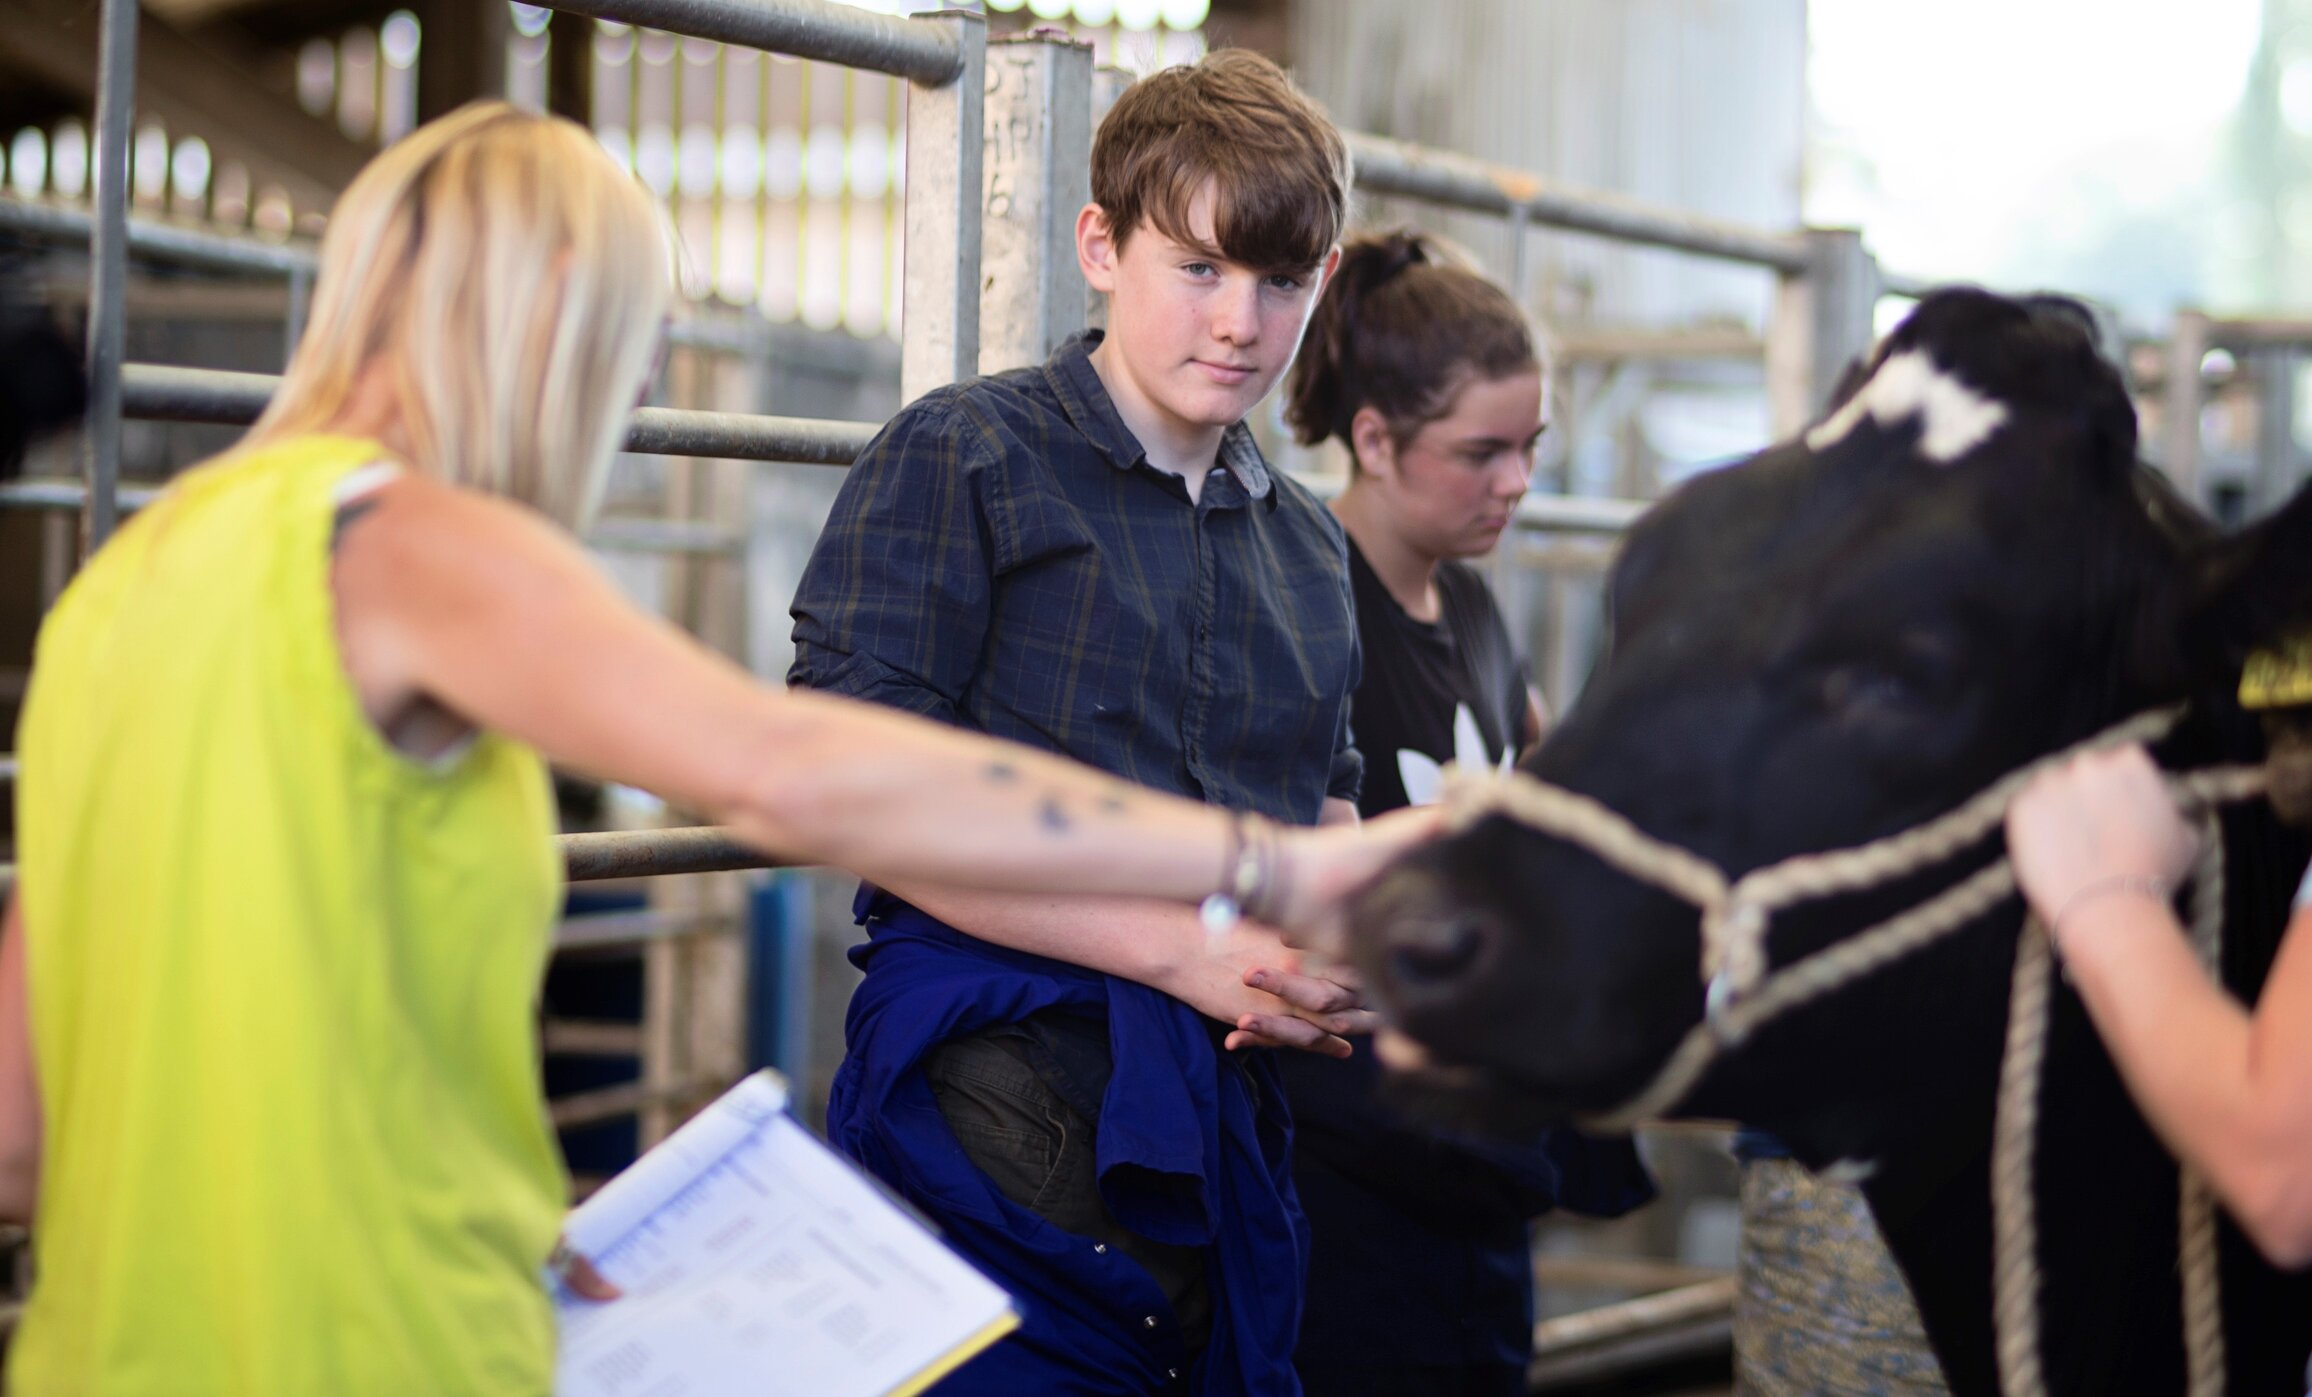 Schools to contest annual agri competition hosted by LEAF Education and North Wales college